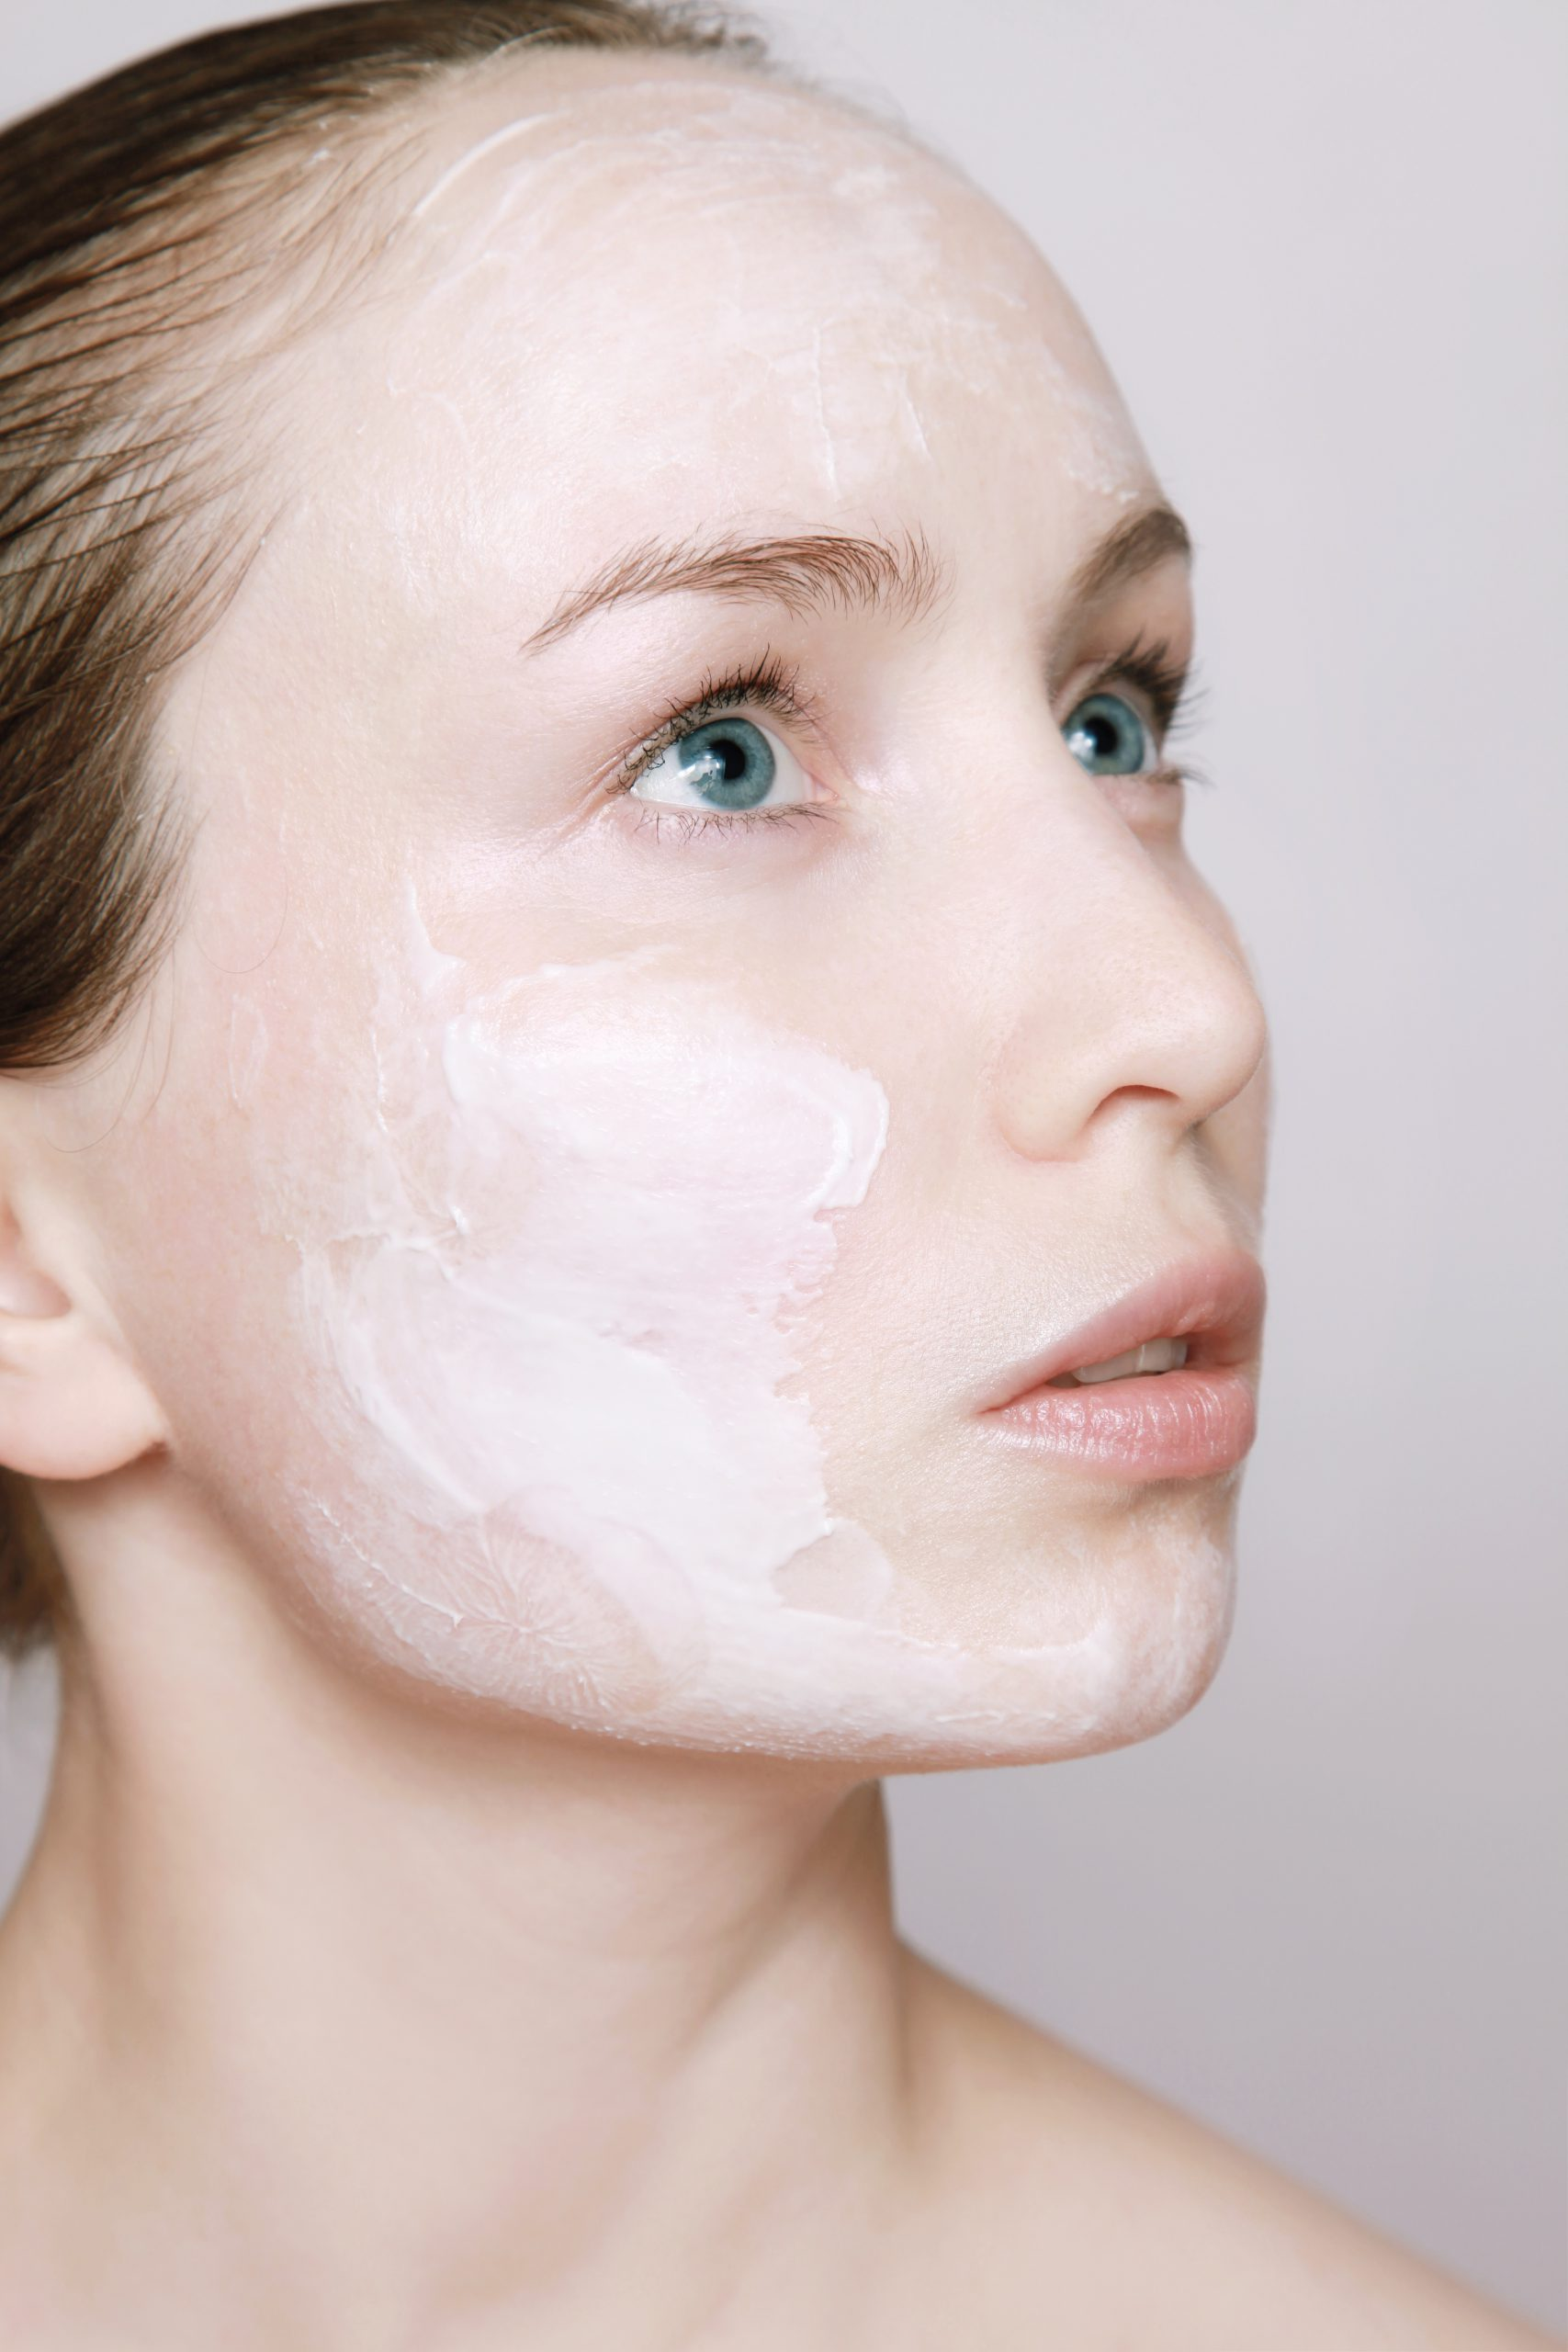 Photo of a young woman, who appears to be white, looking to the right. She has white lotion on her face.